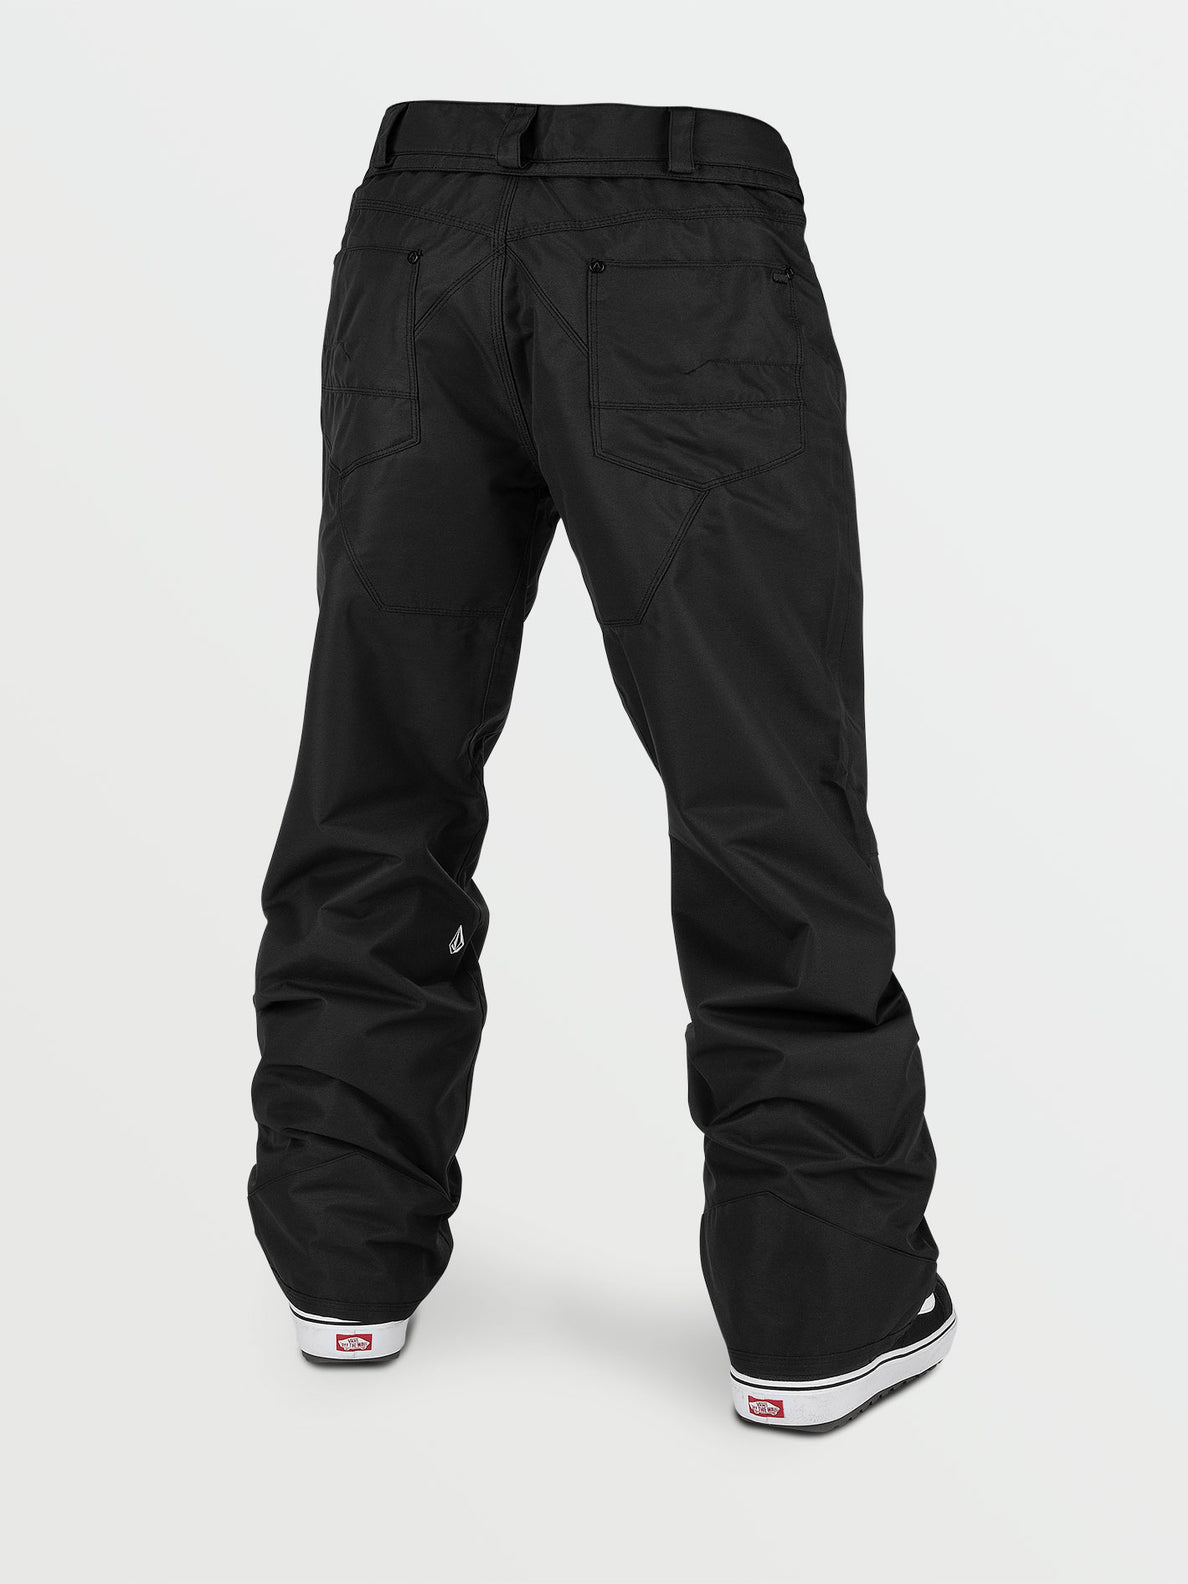 Carbon Pant Black (G1352112_BLK) [B]